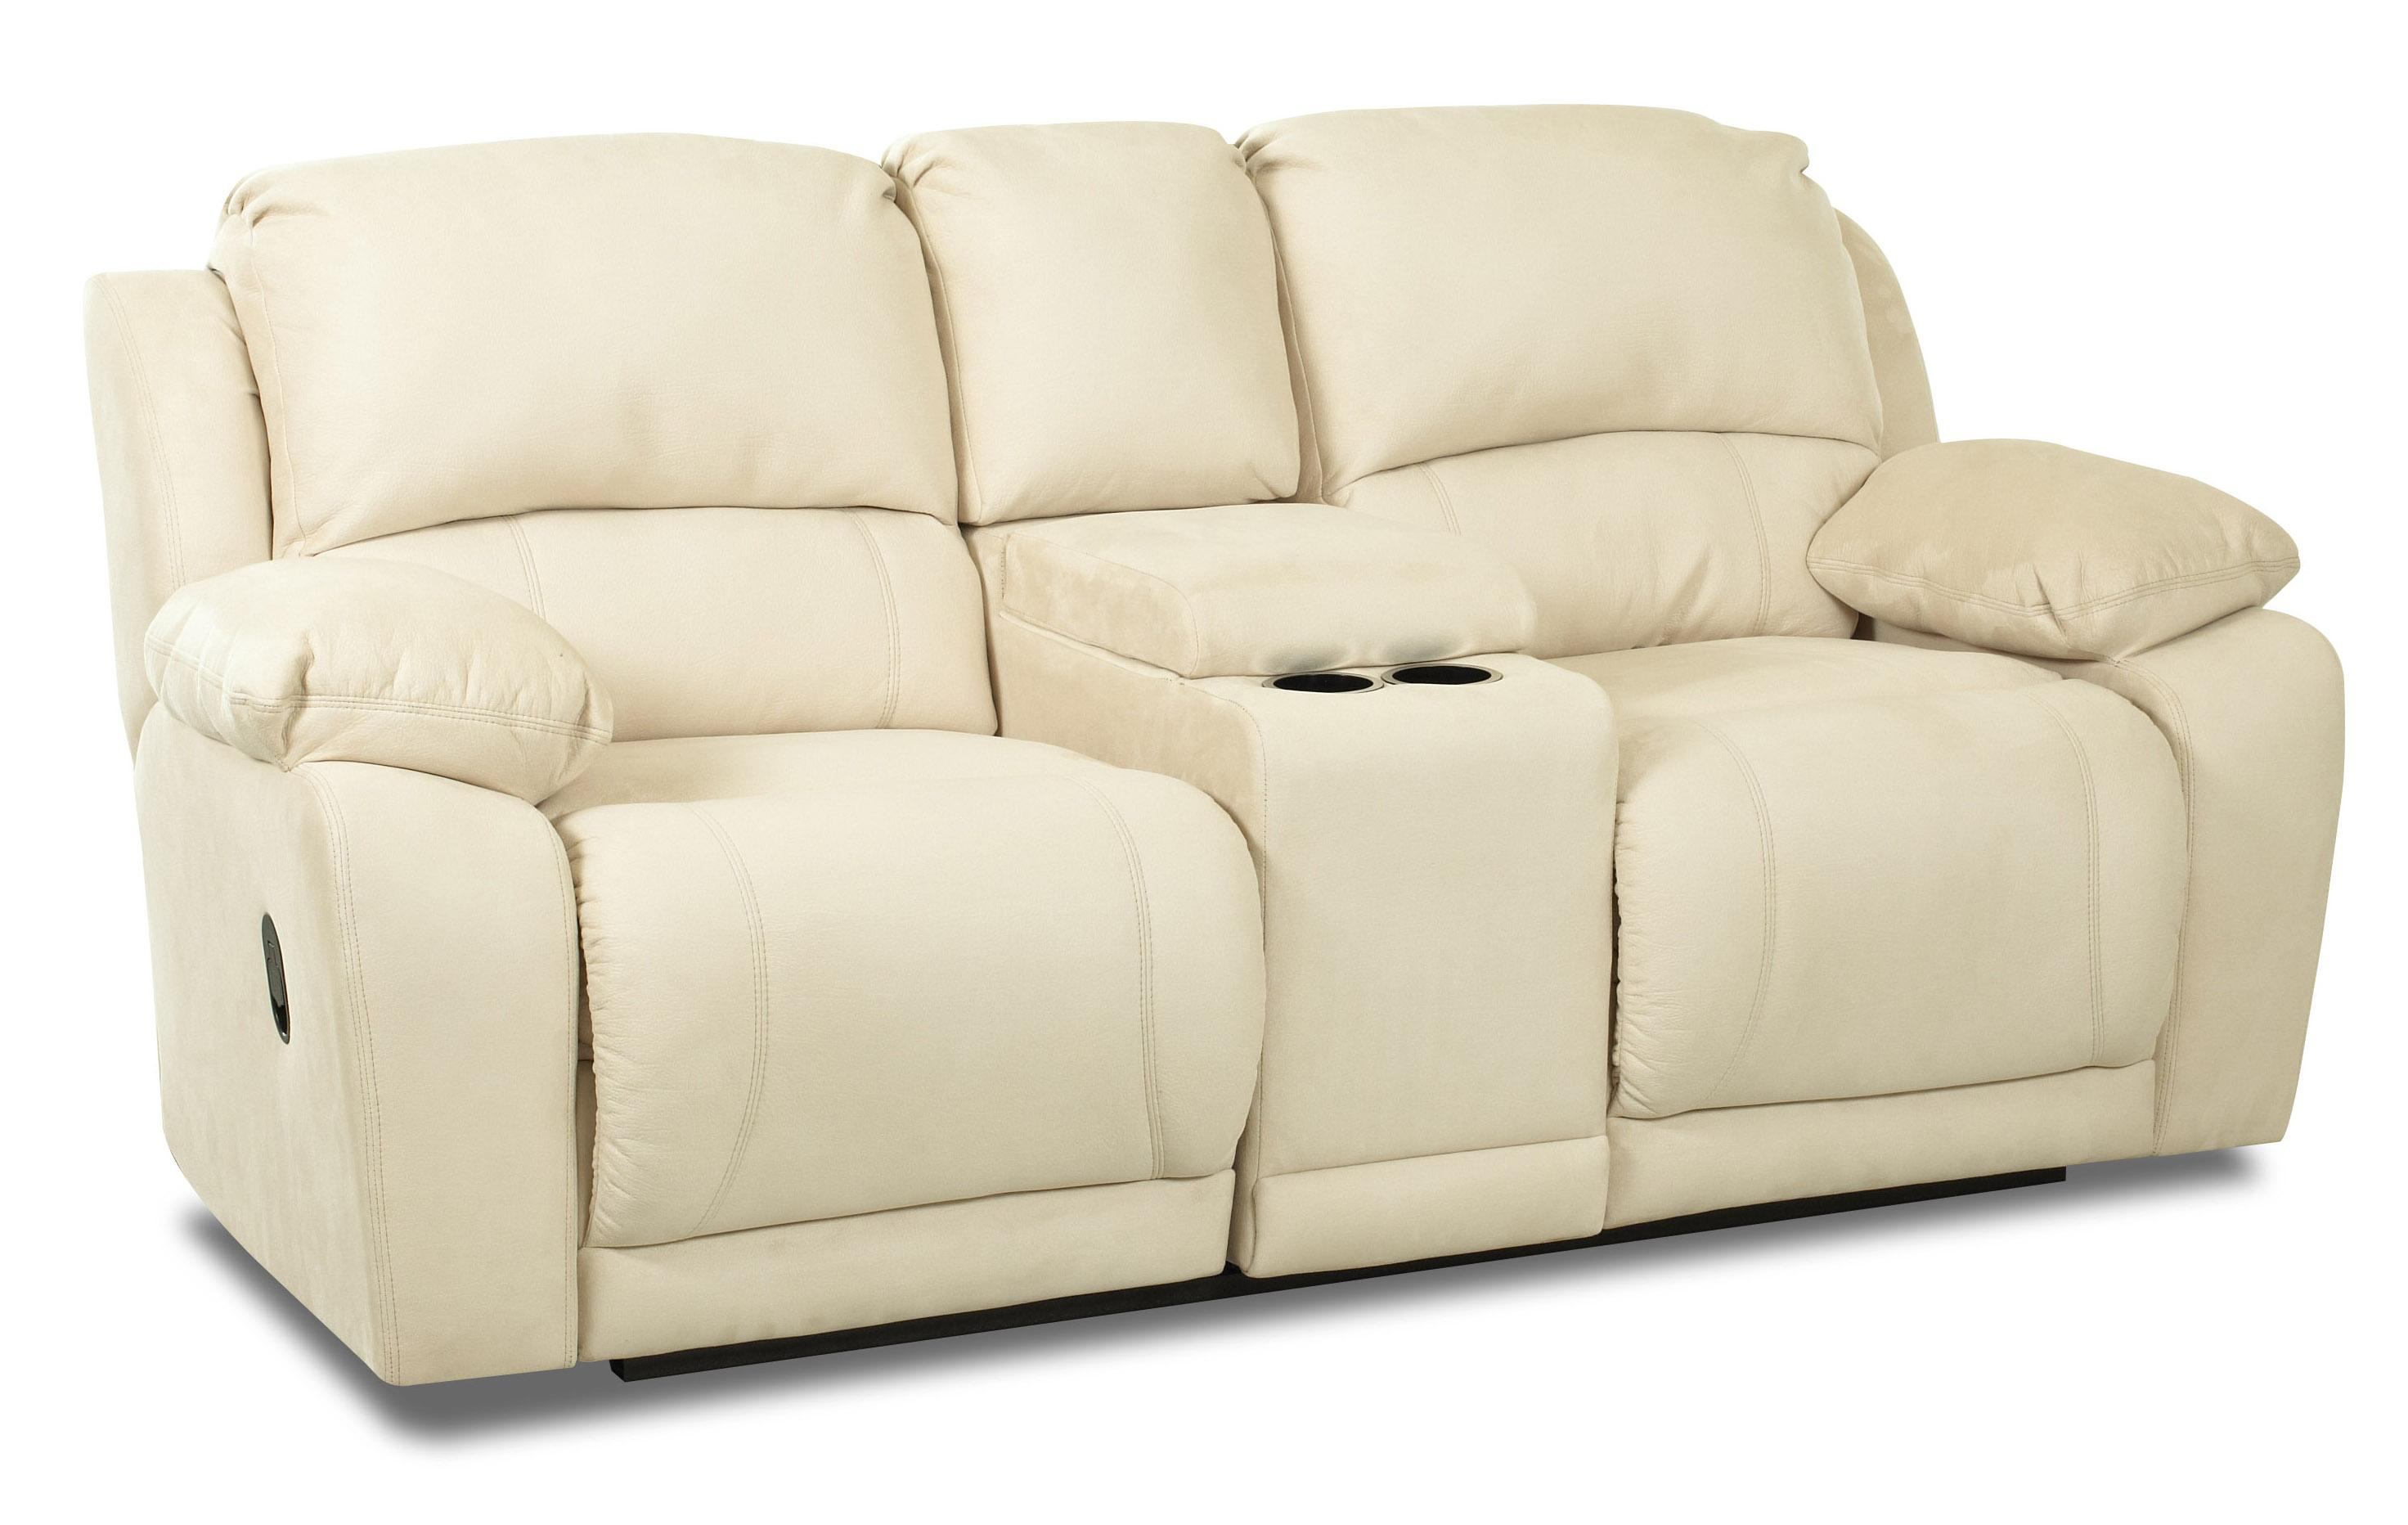 Dual Unit Reclining Loveseat with Storage Console  sc 1 st  Wolf Furniture & Dual Unit Reclining Loveseat with Storage Console by Klaussner ... islam-shia.org